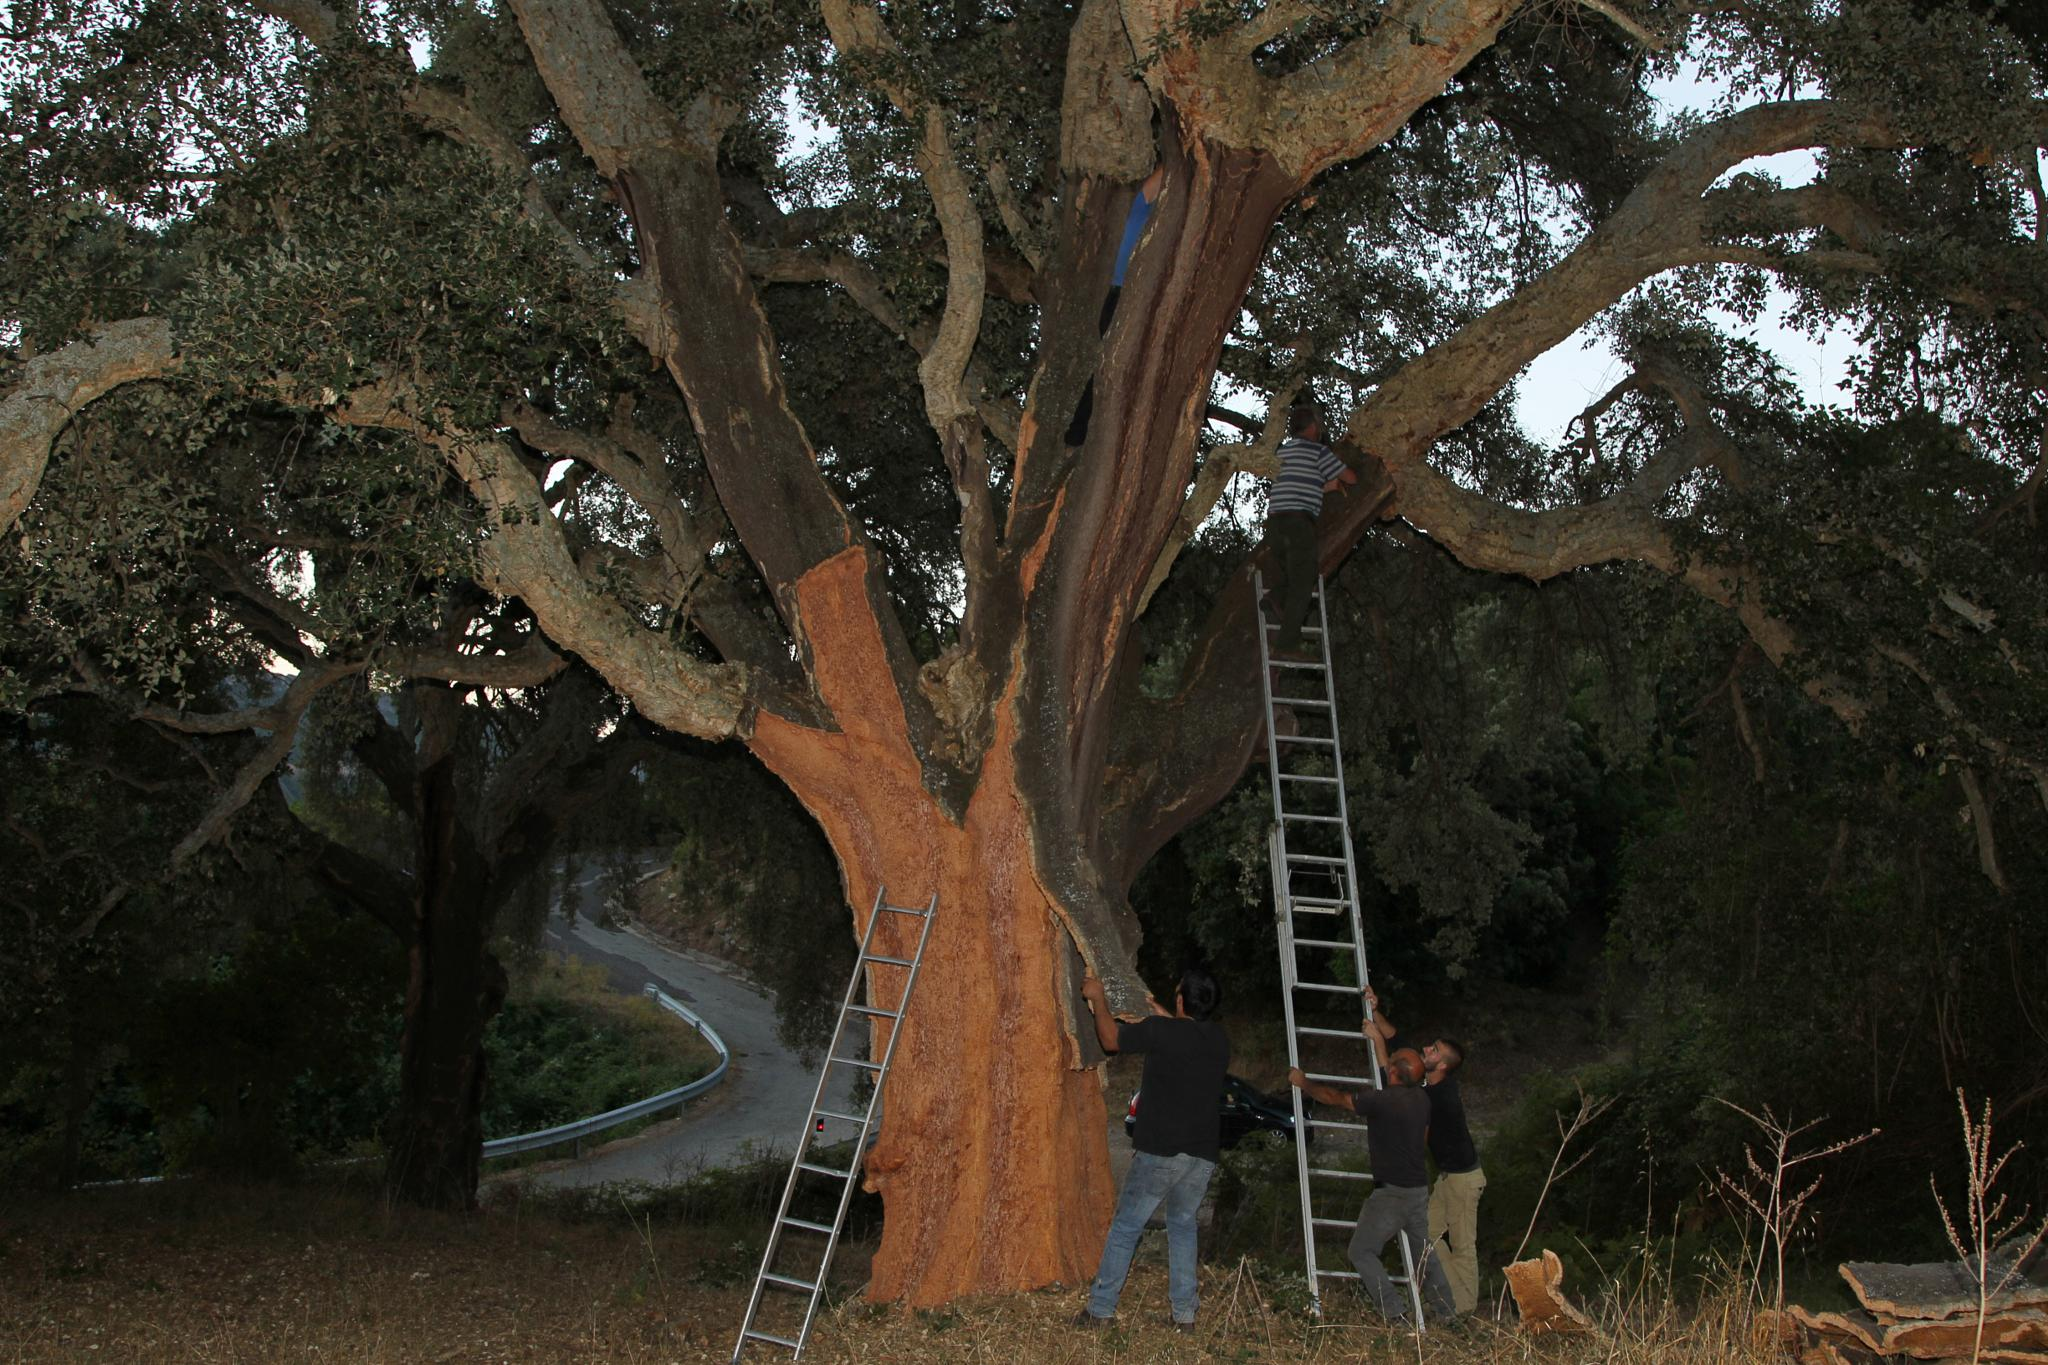 Extraction of the cork in the old trees in Sardinia by Edos Foto Orroli